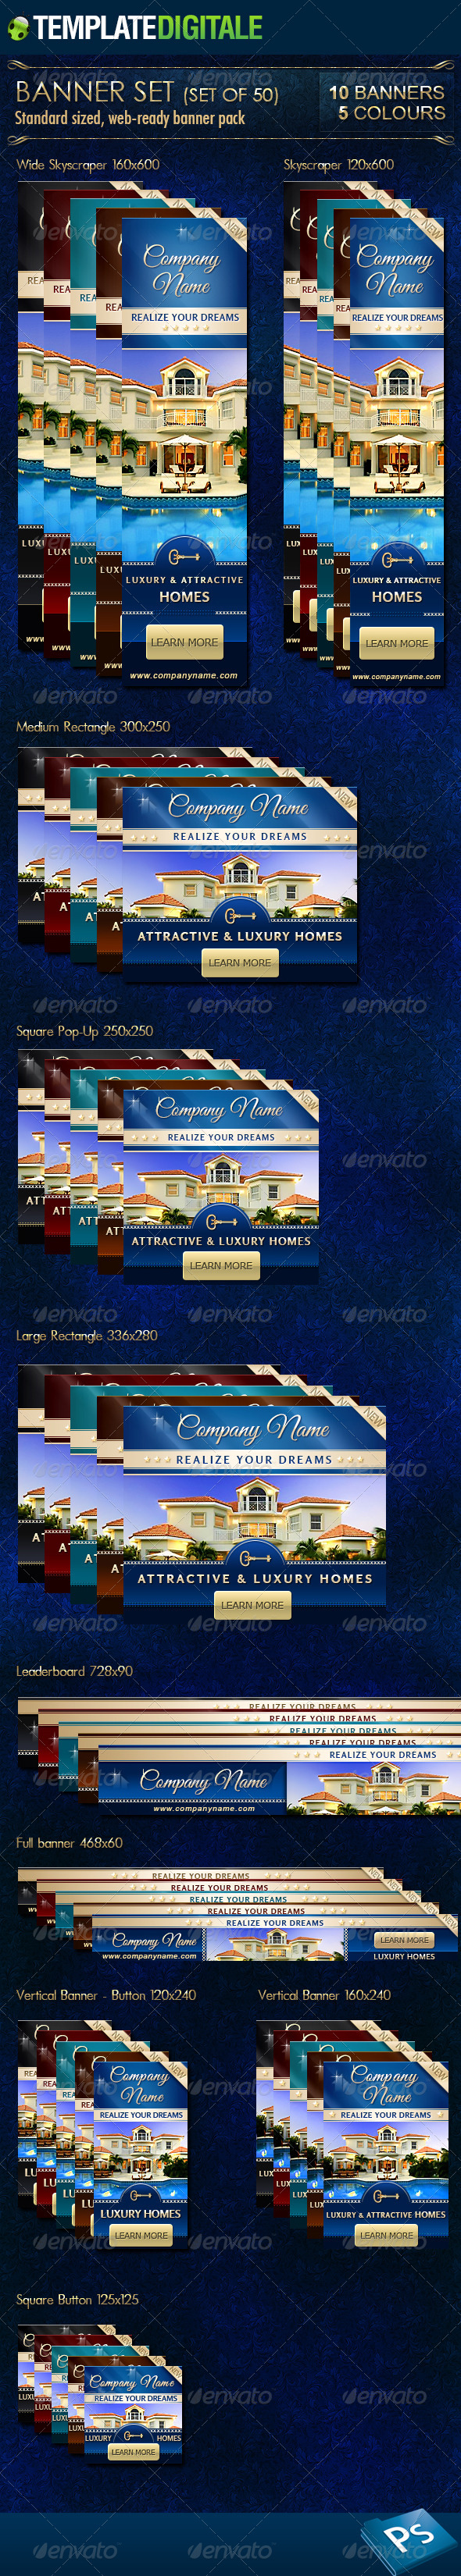 Luxury Real Estate Banner Set - Banners & Ads Web Elements